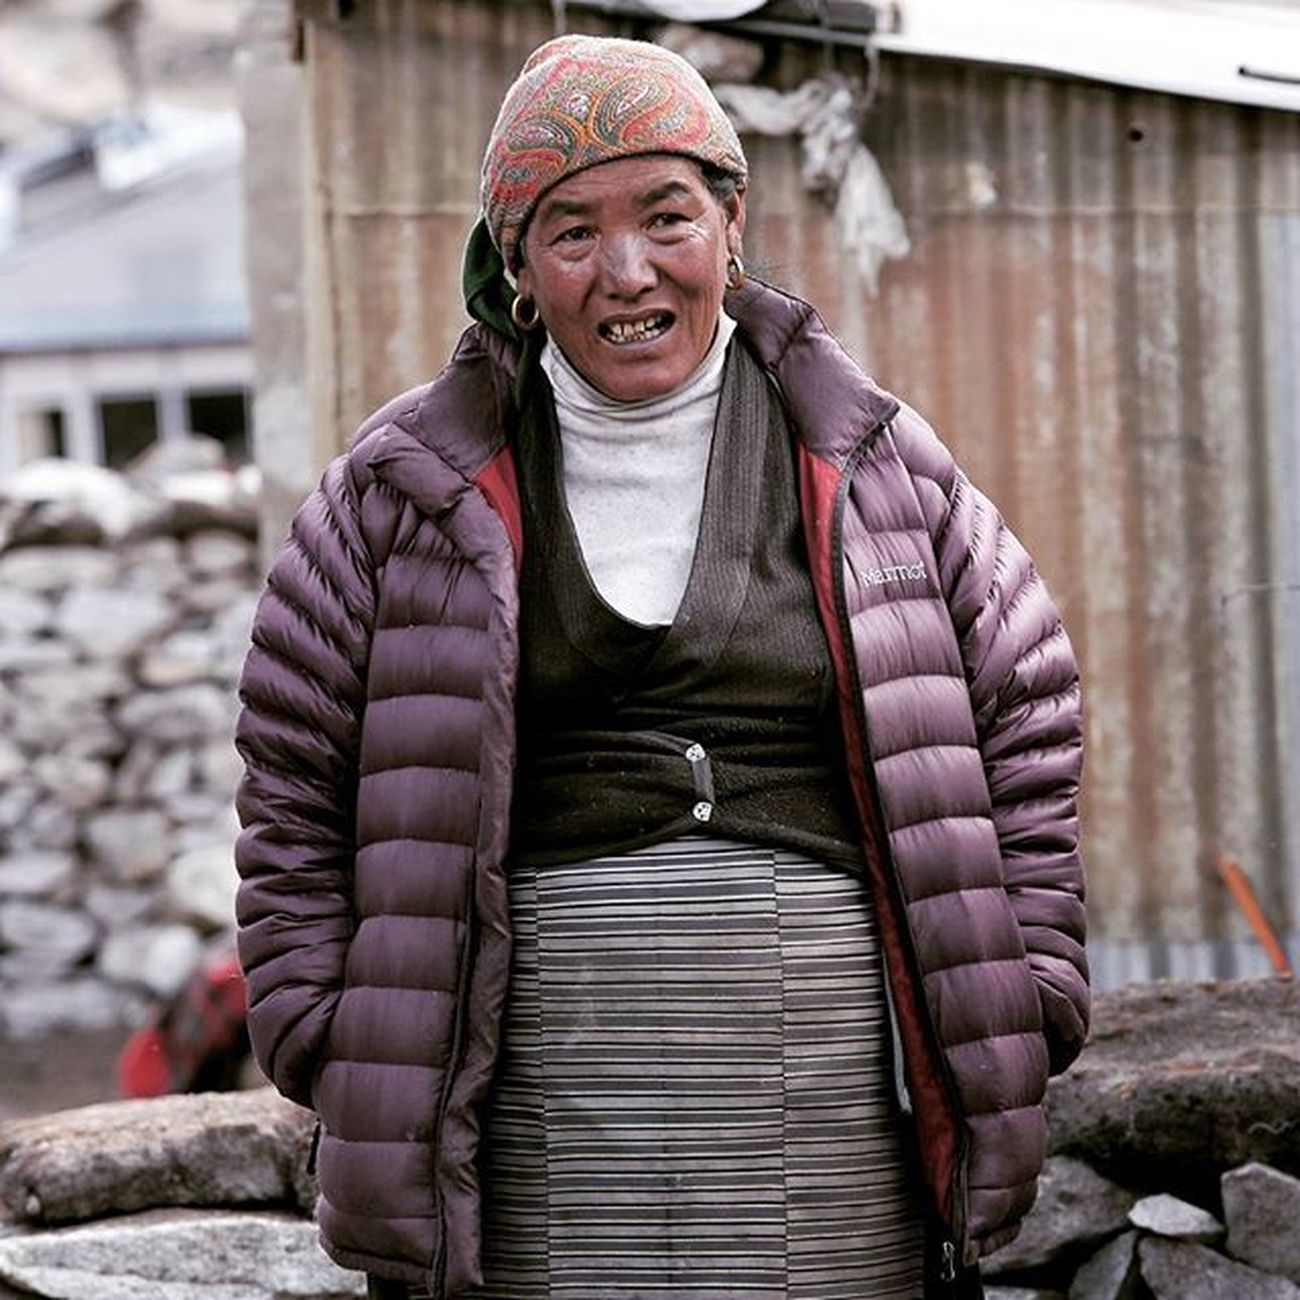 Lakpha's Grandma. Dingboche 4410m Goodday my friends, what yall gonna eat for lunch? Remember DalBhat power, 24 hour. Nepal Himalaya Potrait Ig_portraits Dingboche Ig_mood Igshotz_mag Soft_vision Igshotz_folk ExploringGlobe Alldayexploring Adventurevisuals Travel2next 30xthirty Zerogrid Myfeatureshoot Worlderlust Humaninterest_id